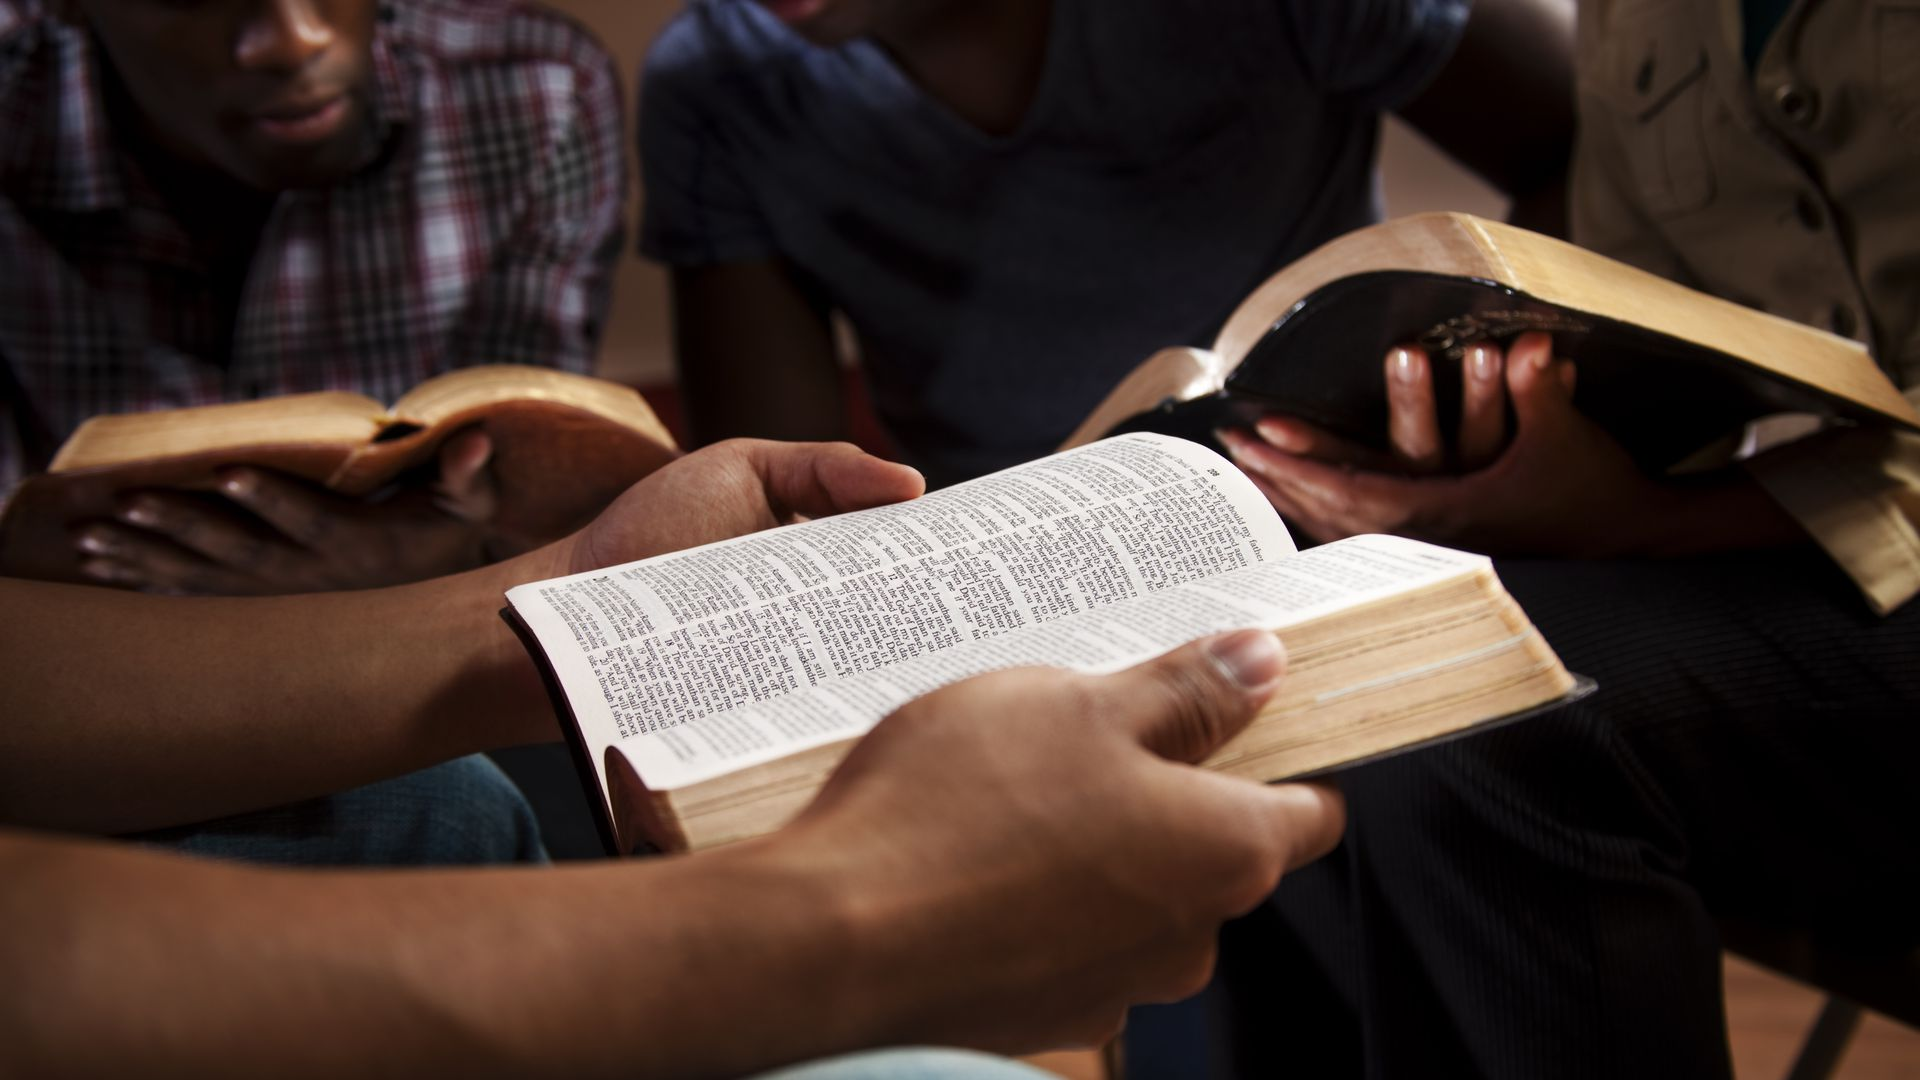 Group of people reading the Bible